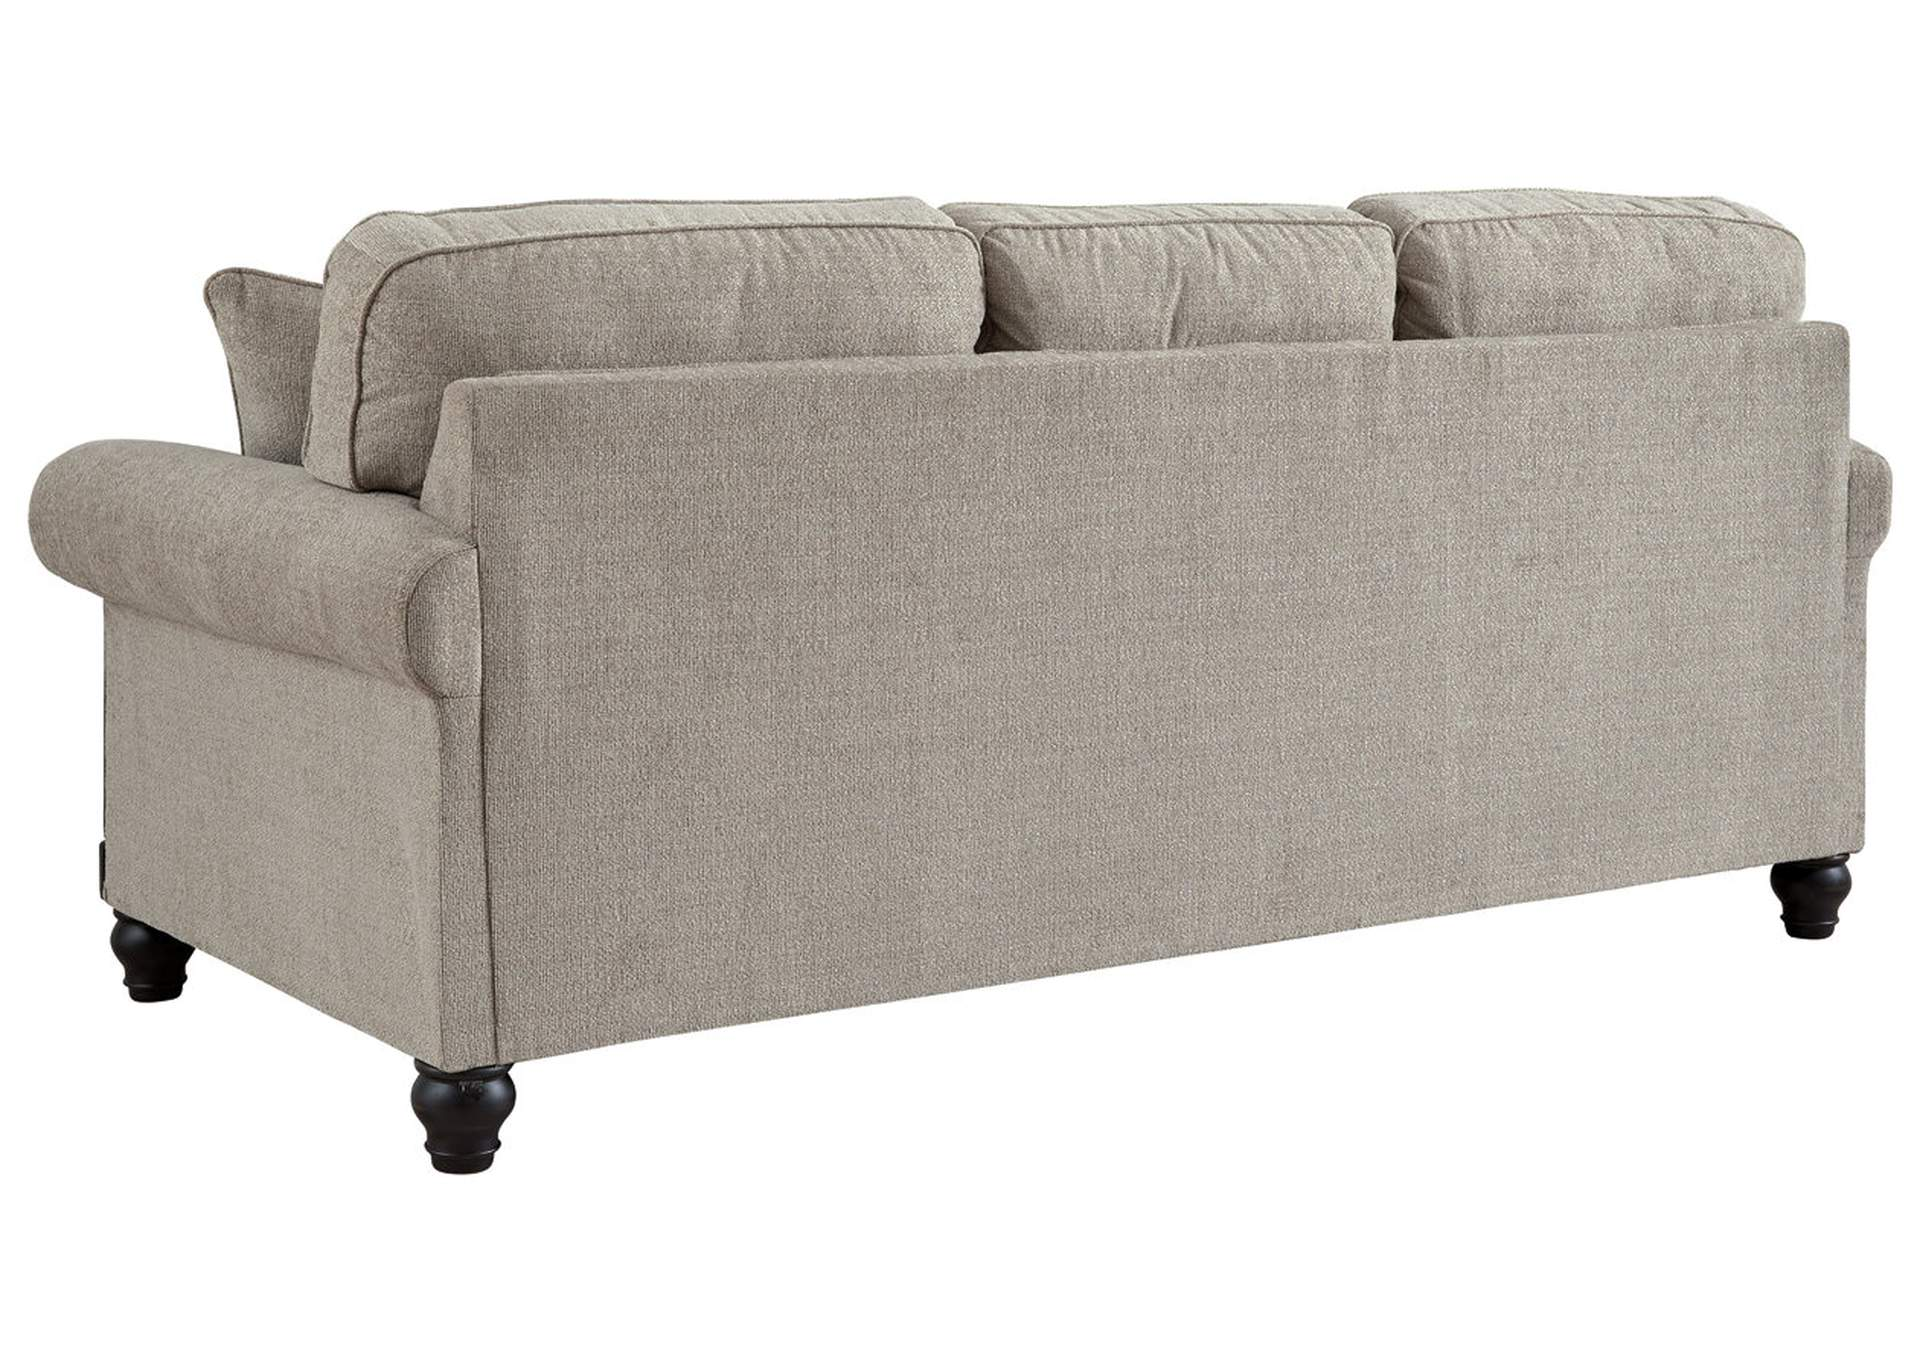 Benbrook Ash Sofa,Signature Design By Ashley